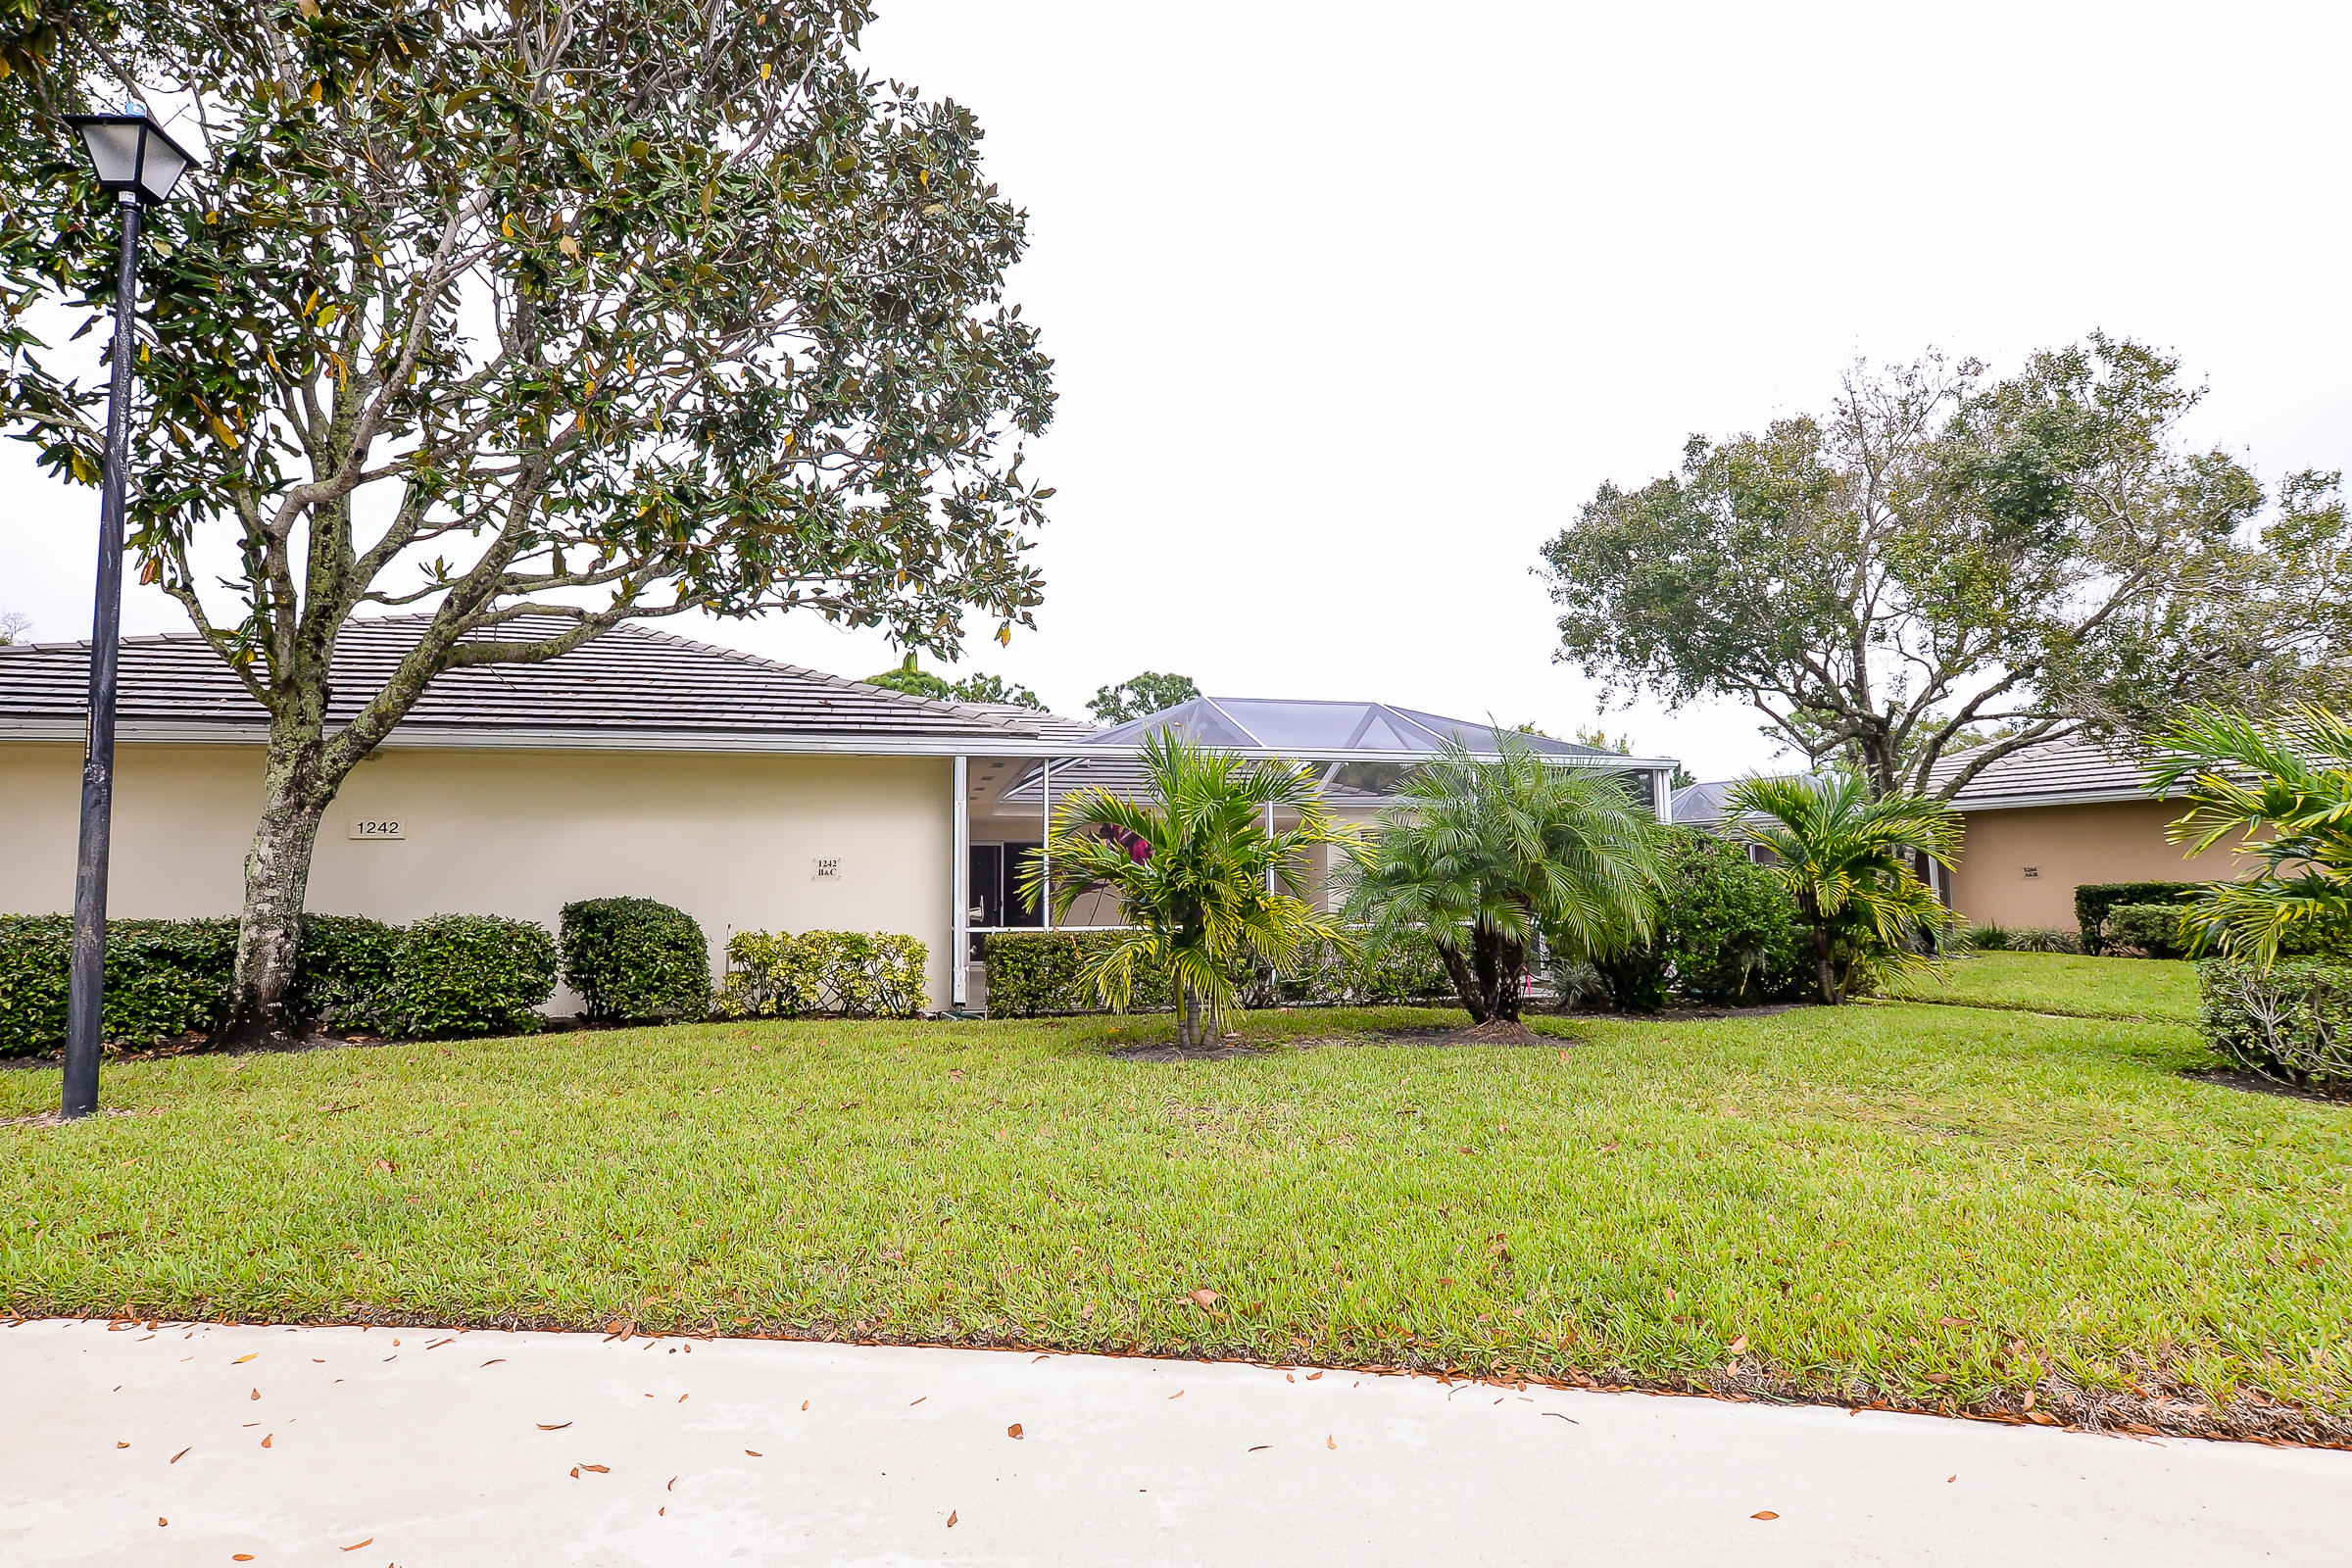 1242 Nw Sun Terrace Circle, Port Saint Lucie, FL 34986